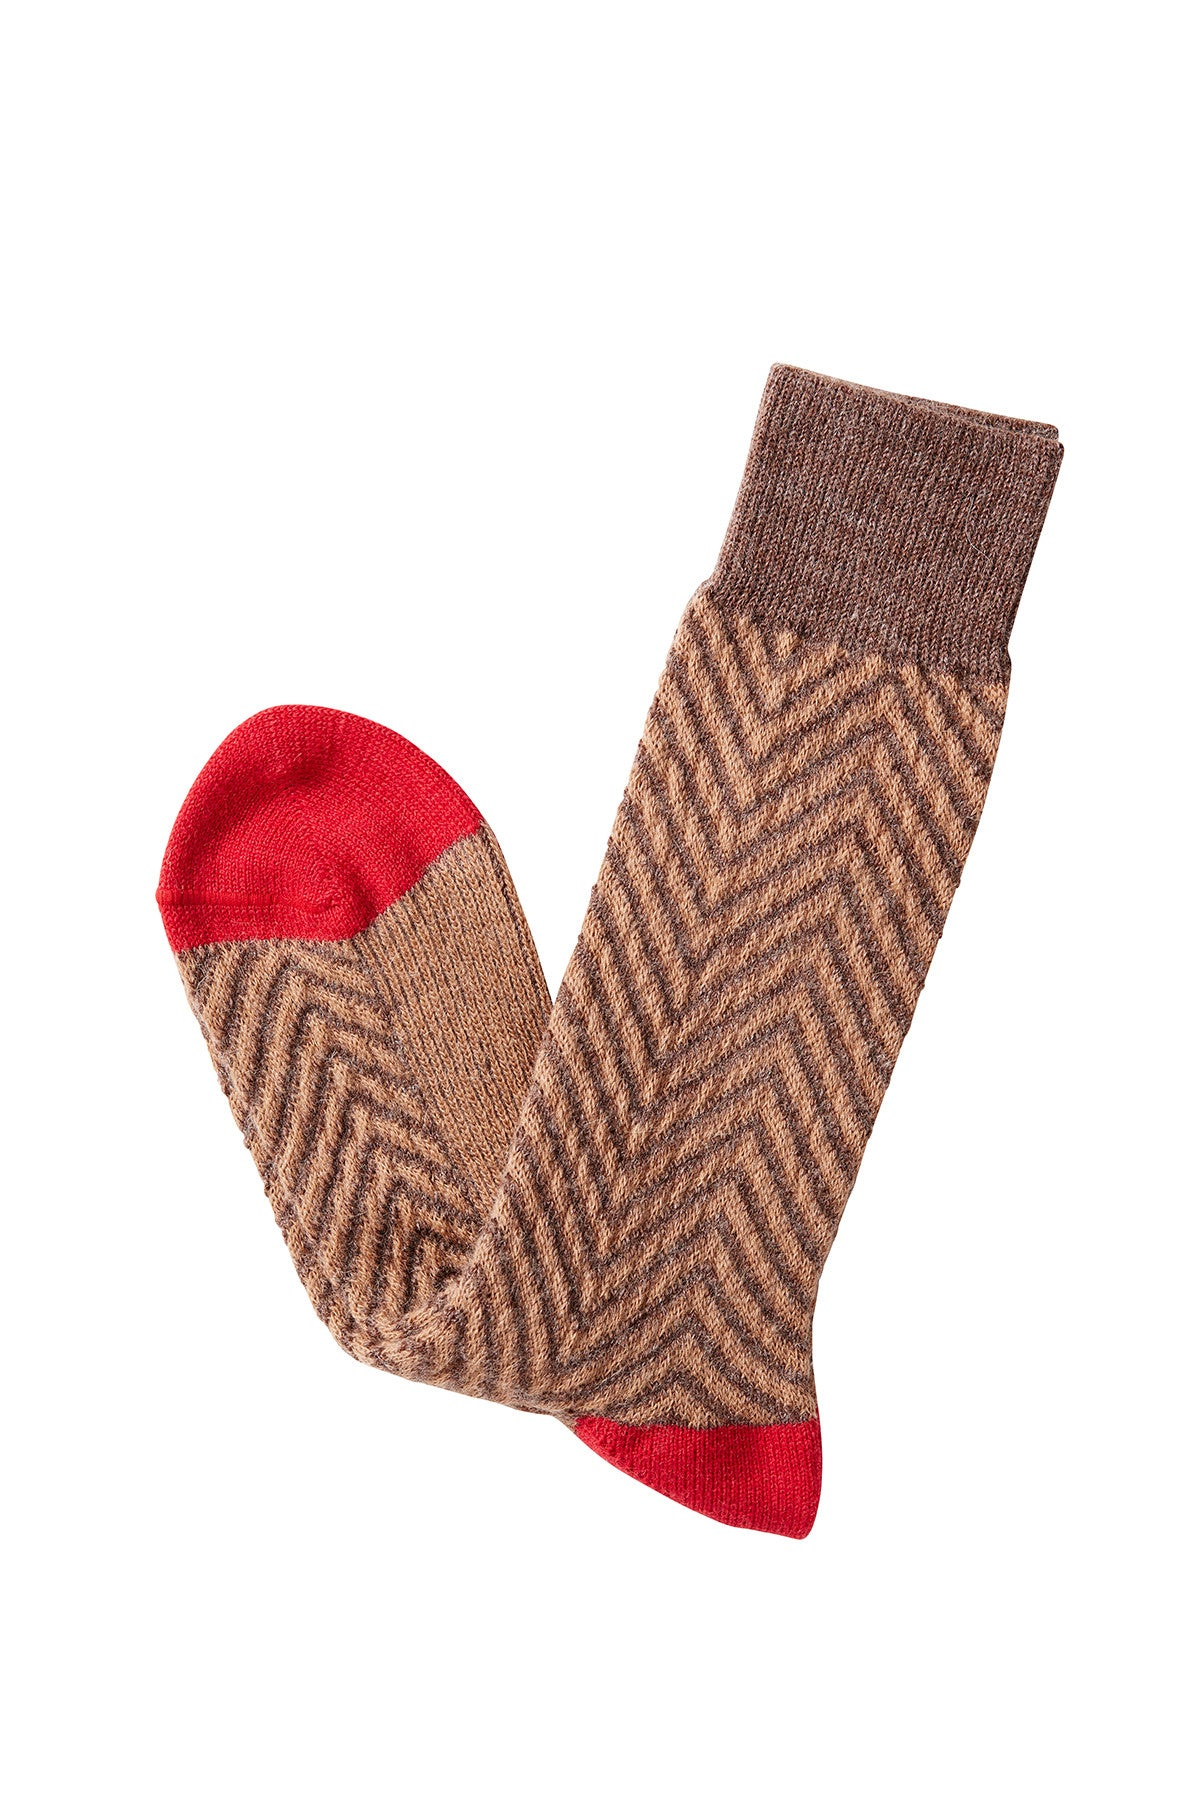 David August Socks - Brown Chevron Socks